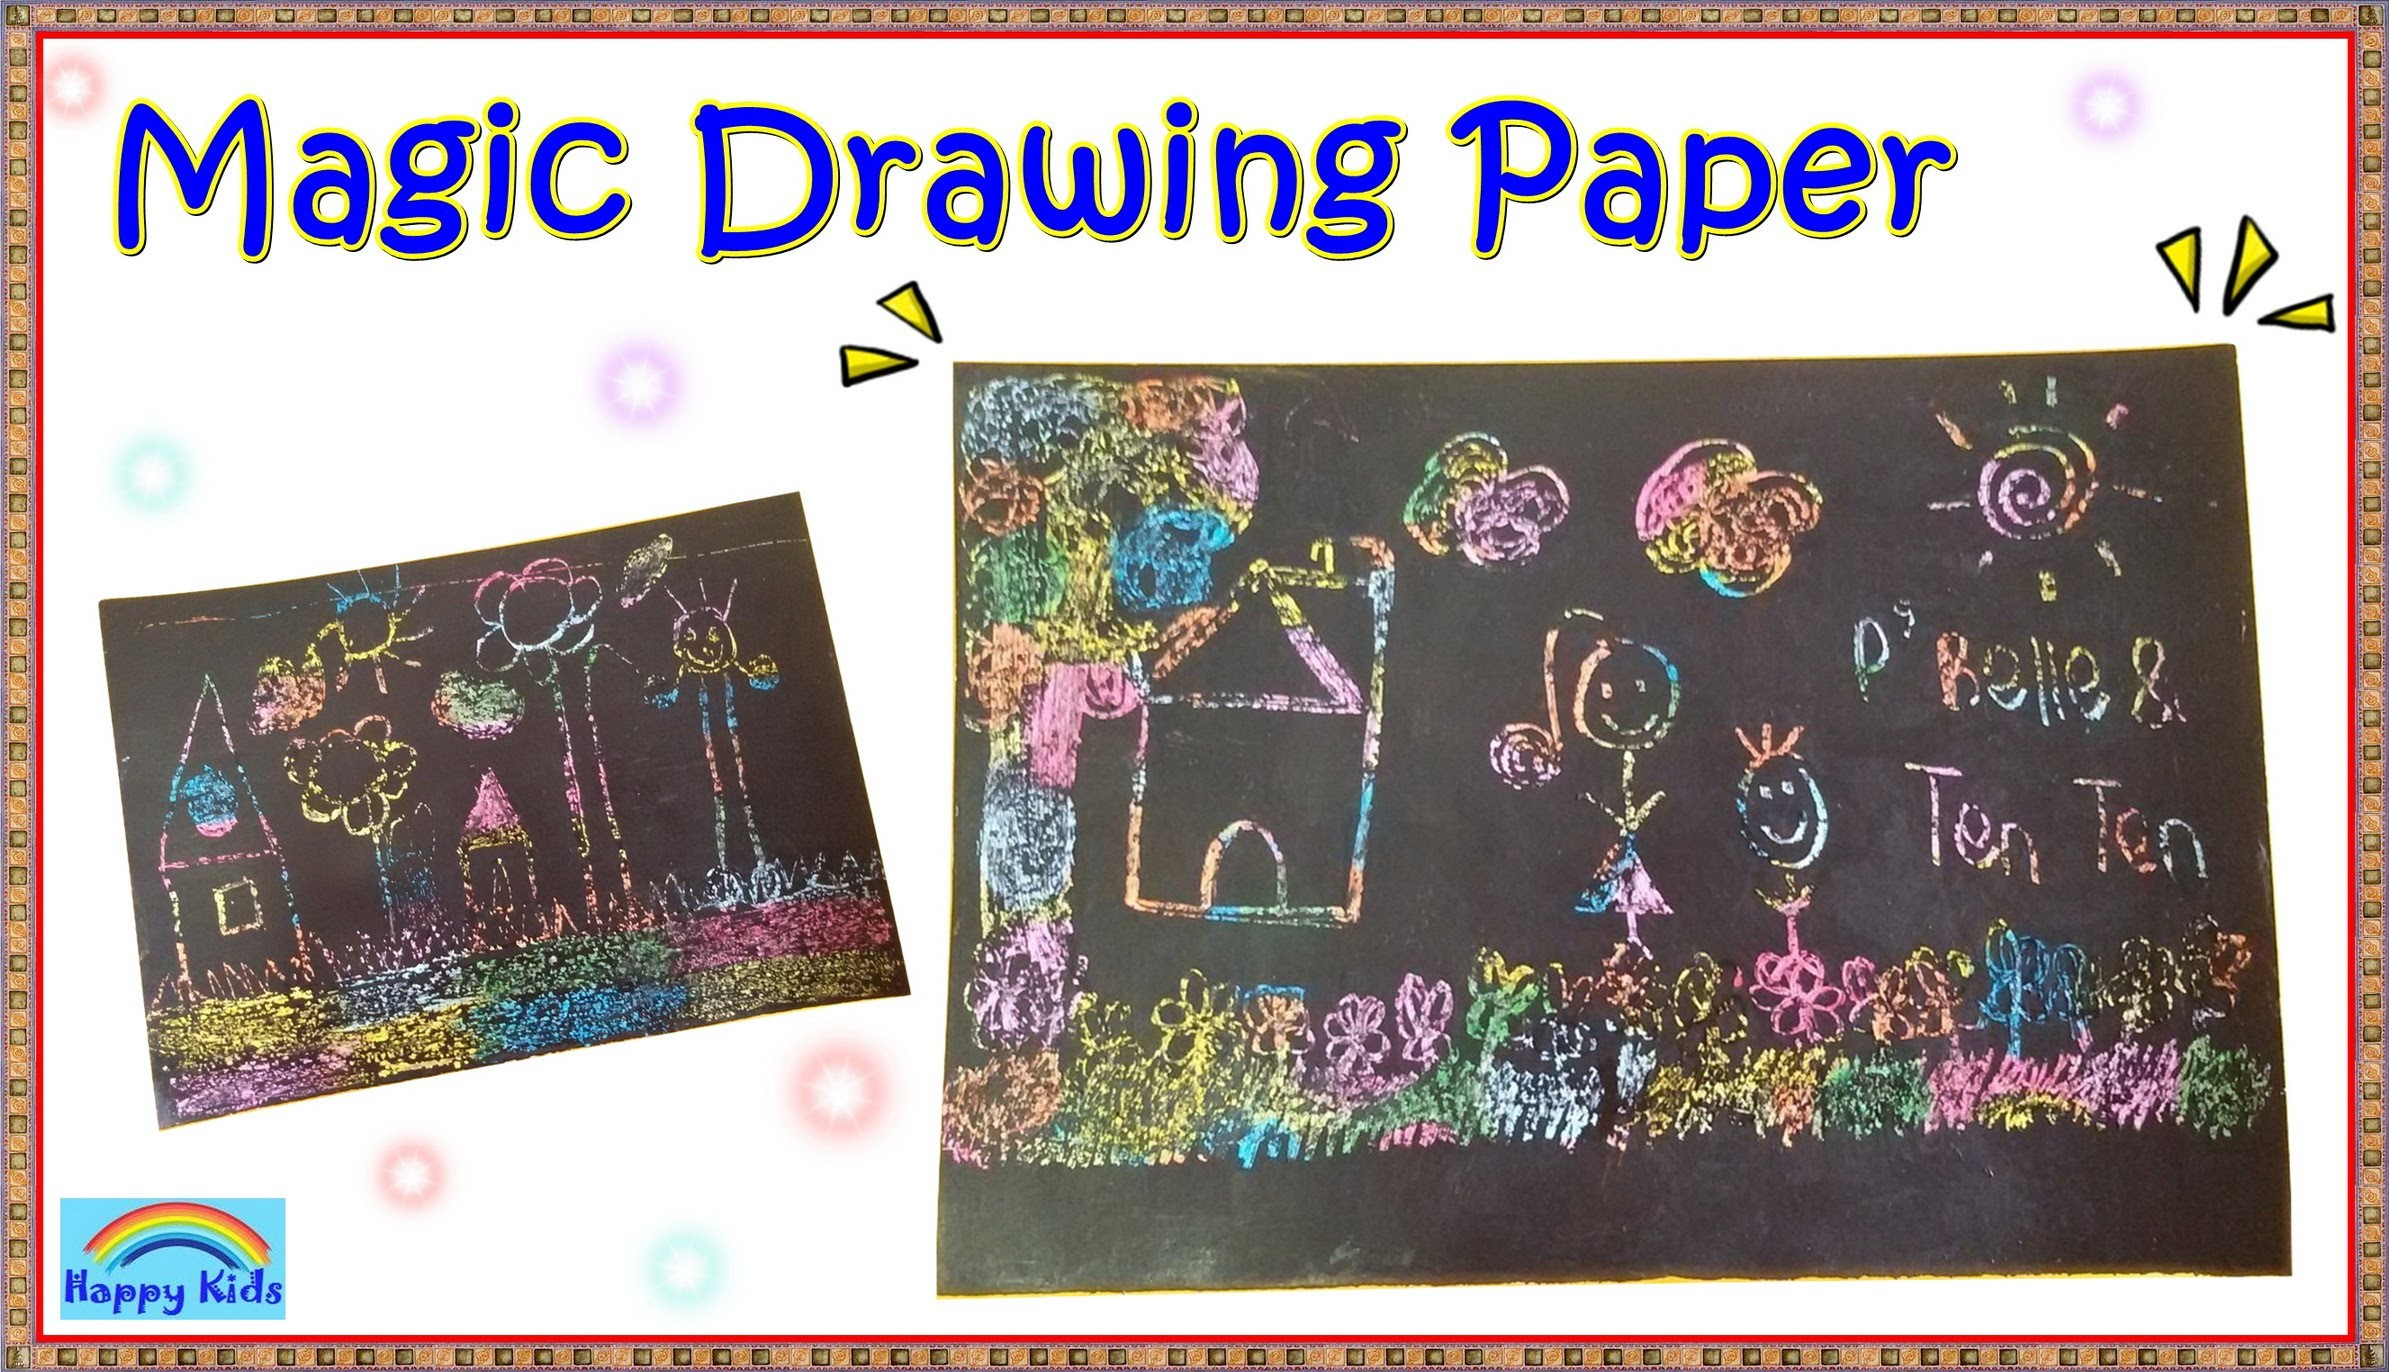 How to make a Magic Drawing Paper